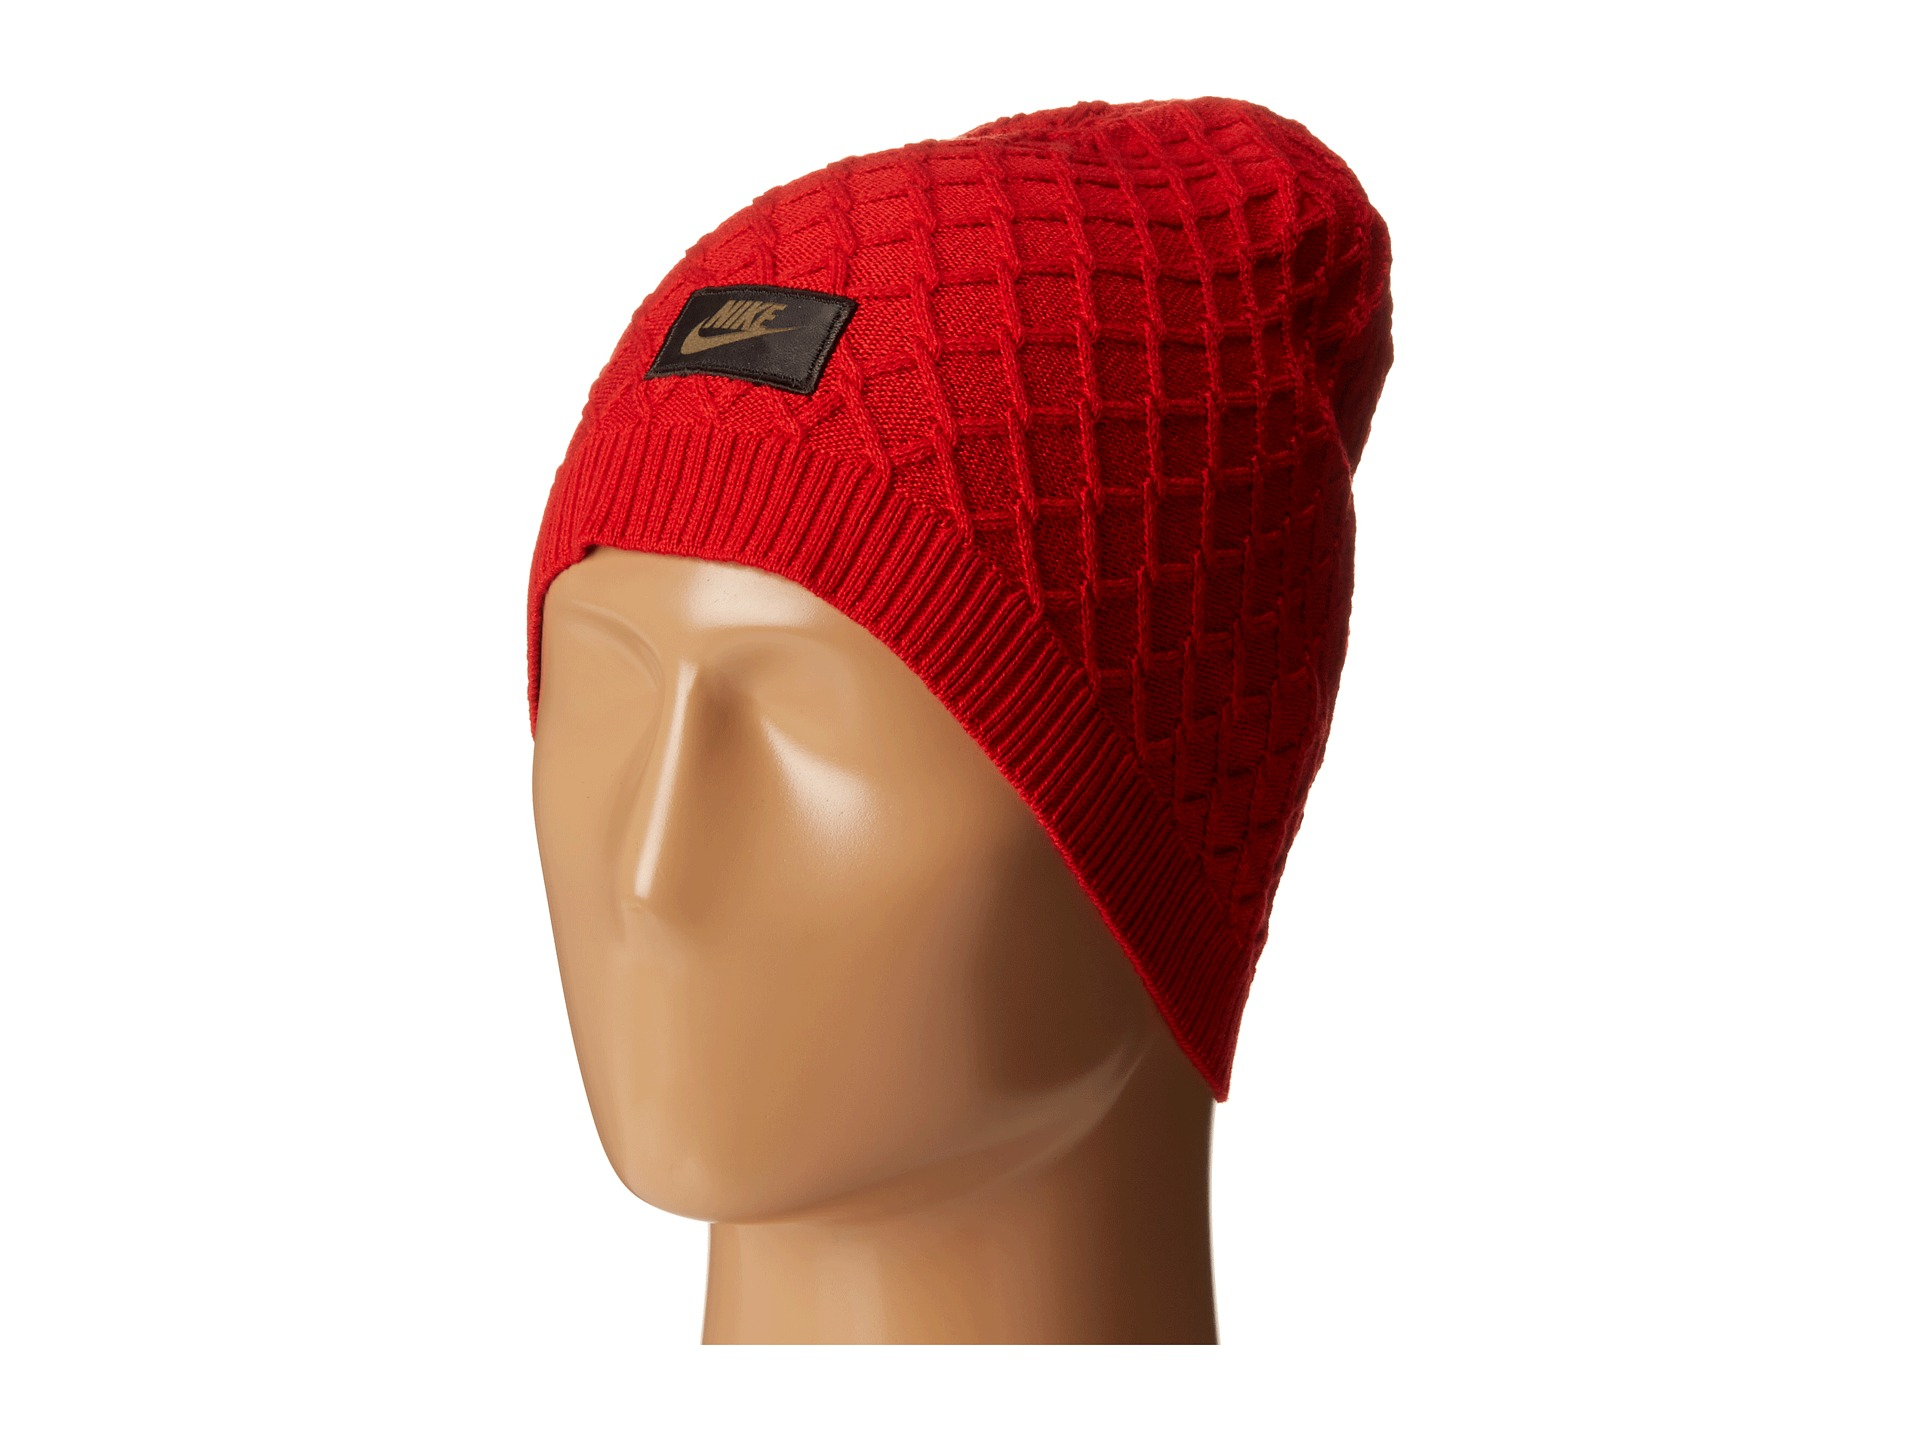 Lyst - Nike Sportswear Cable Knit Beanie in Red for Men 1331dfcbcab